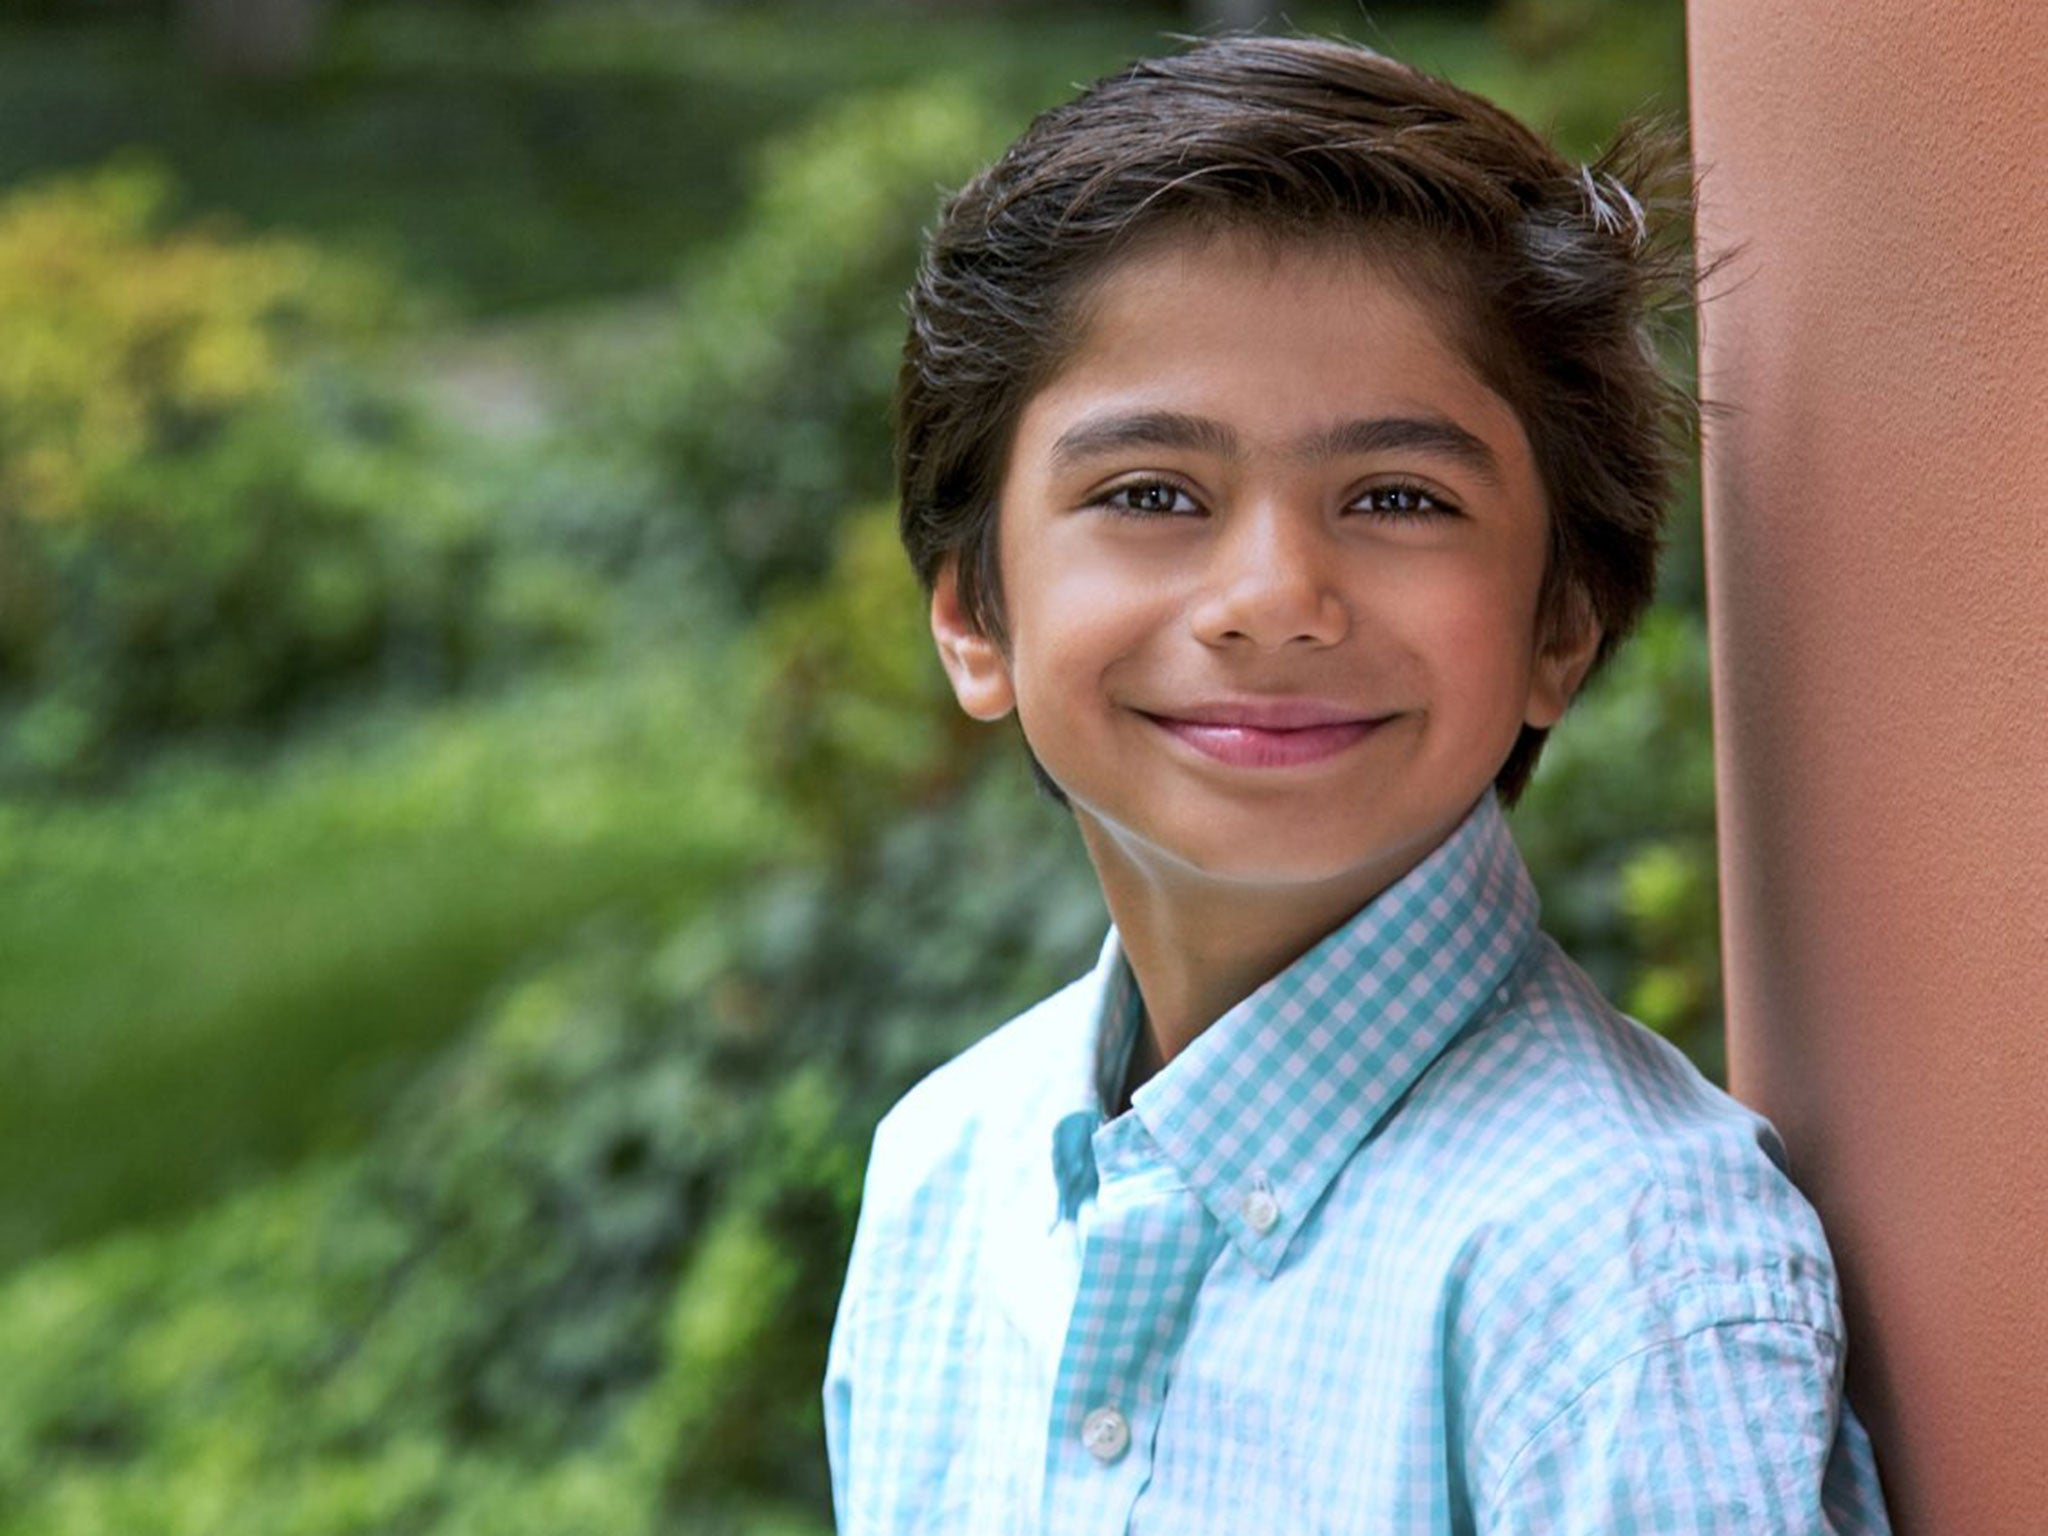 neel sethi wikineel sethi wiki, neel sethi biography, neel sethi instagram, neel sethi, neel sethi parents, neel sethi age, neel sethi bio, neel sethi jungle book, neel sethi imdb, neel sethi family, neel sethi interview, neel sethi wikipedia, neel sethi net worth, neel sethi diwali, neel sethi facebook, neel sethi parents names, neel sethi edad, neel sethi twitter, neel sethi nationality, neel sethi audition